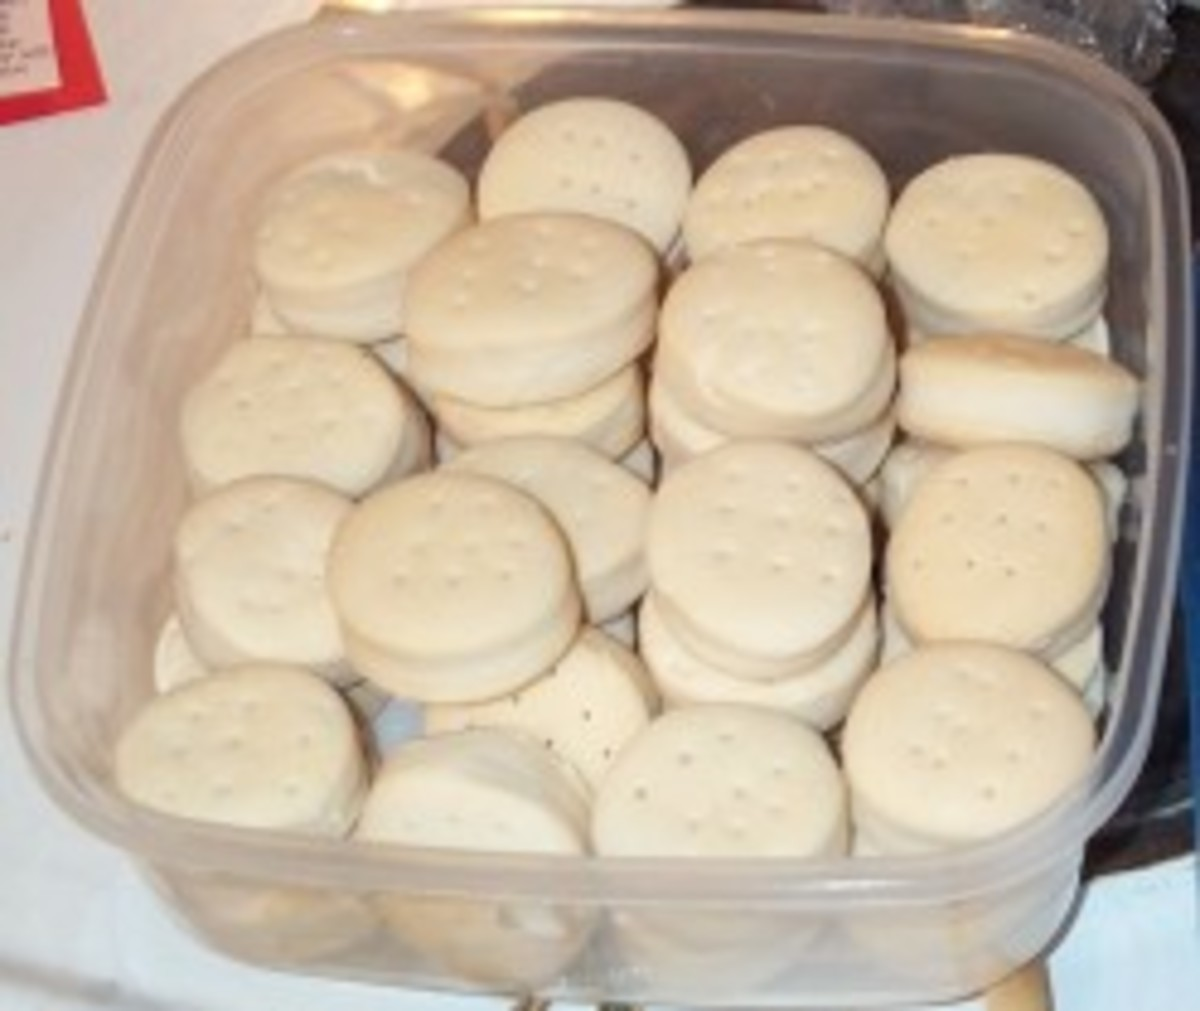 BEATEN BISCUITS offer a pleasing variation, with a subtle difference in flavor and texture..